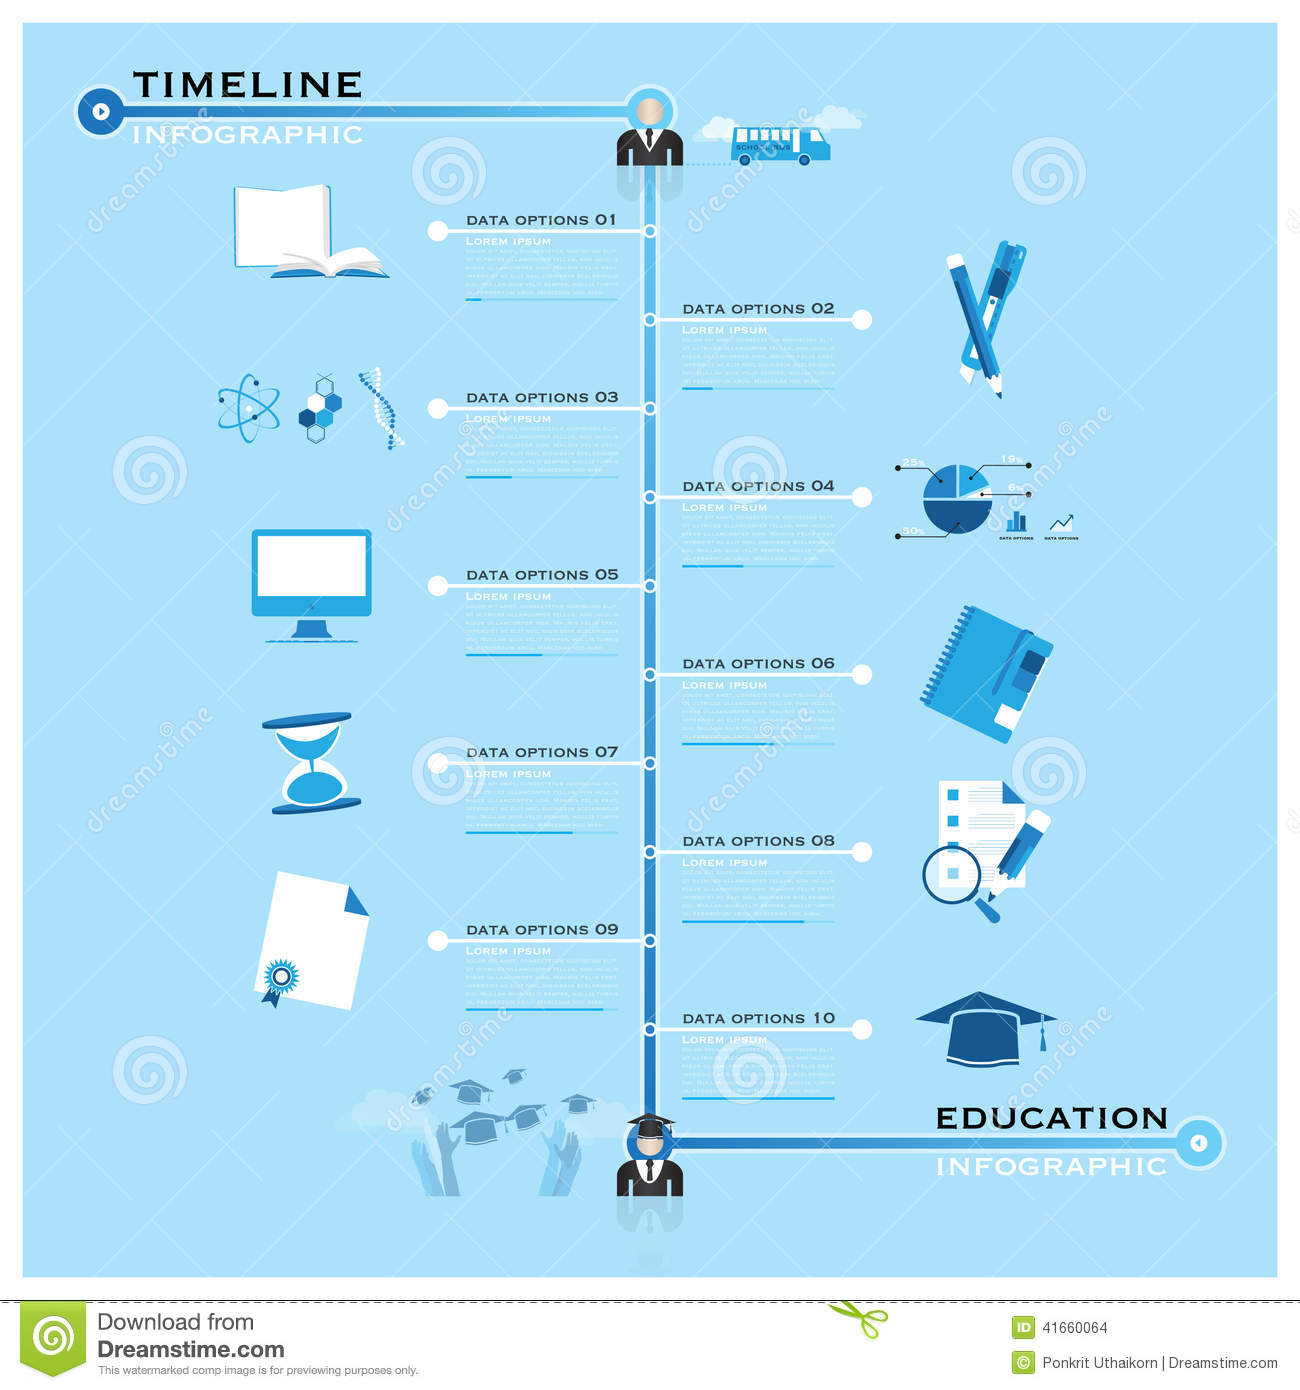 timeline of education This timeline outlines the history of educational technology timeline created by jessica levene for eme 5054, fall 2012 assignment 22xnlxedd cohort 3 at the university of florida edmodo: safe social networking in schools as social networking sites such as myspace and facebook infiltrate society.